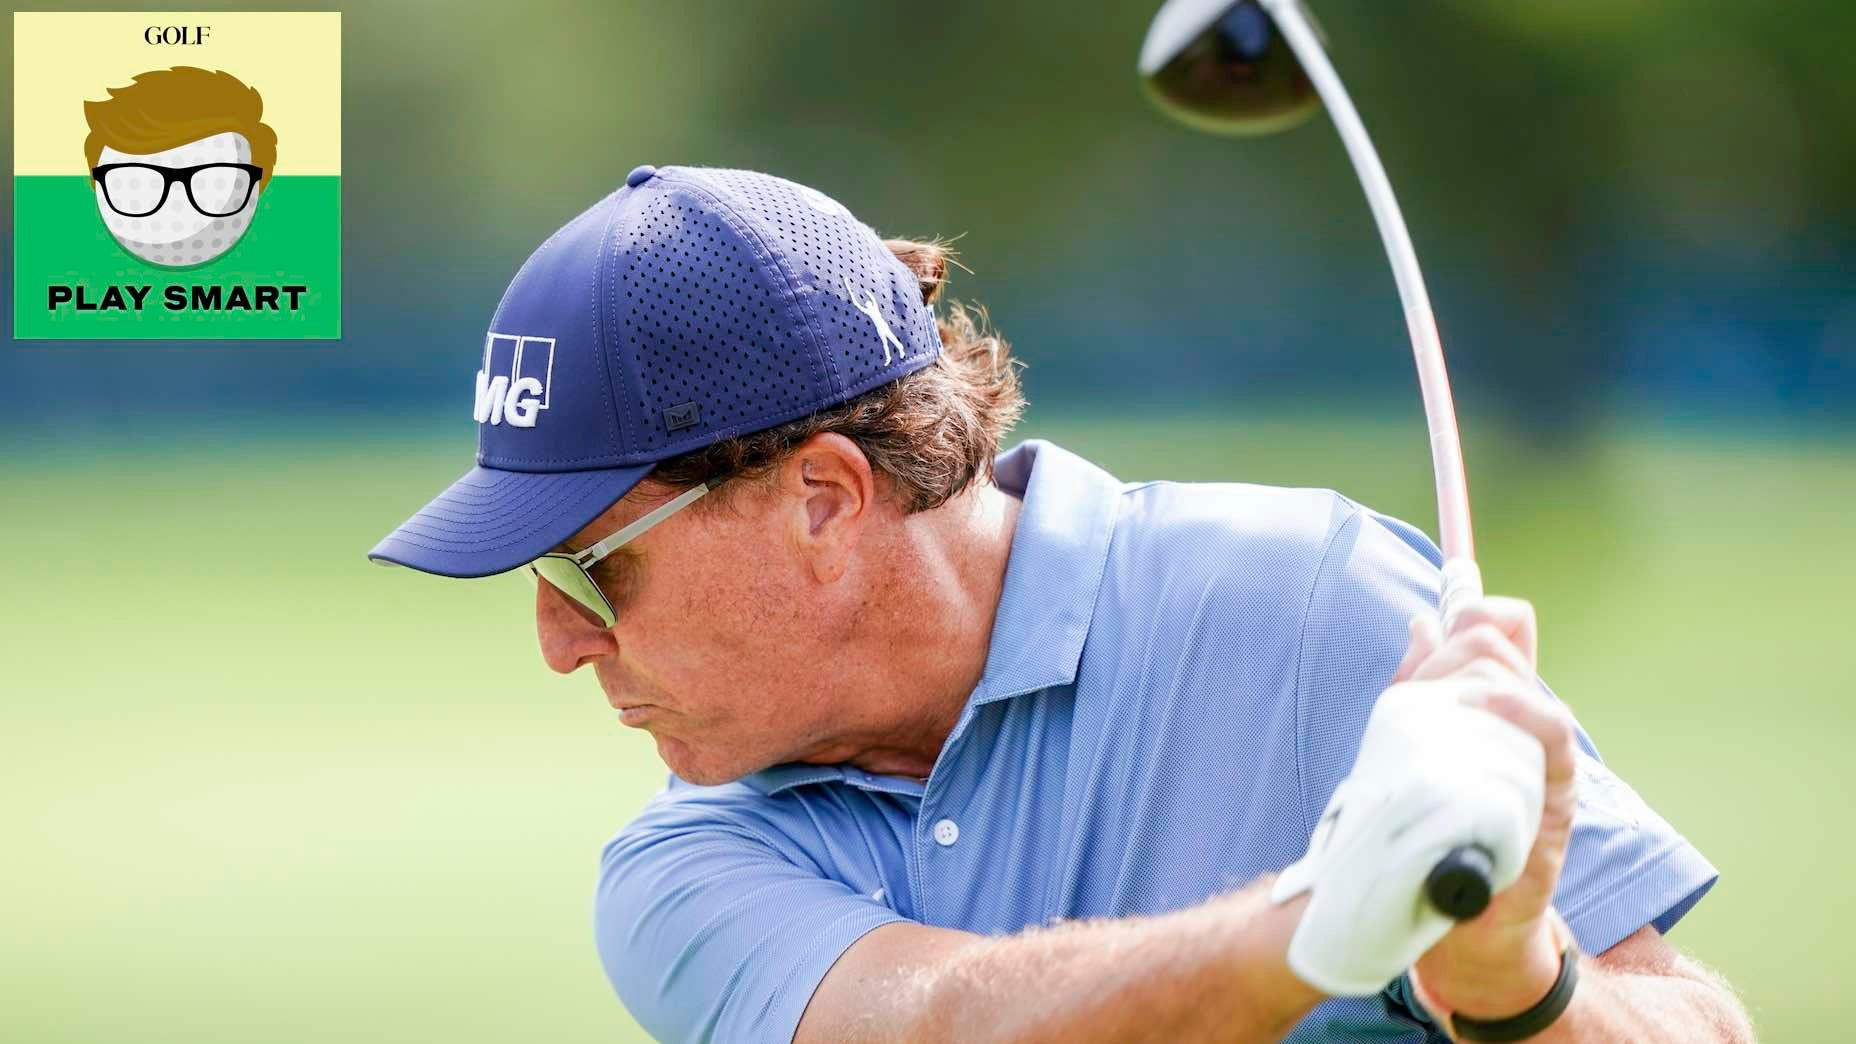 This is Phil Mickelson's 3-step formula for when he *needs* to drive the ball straight